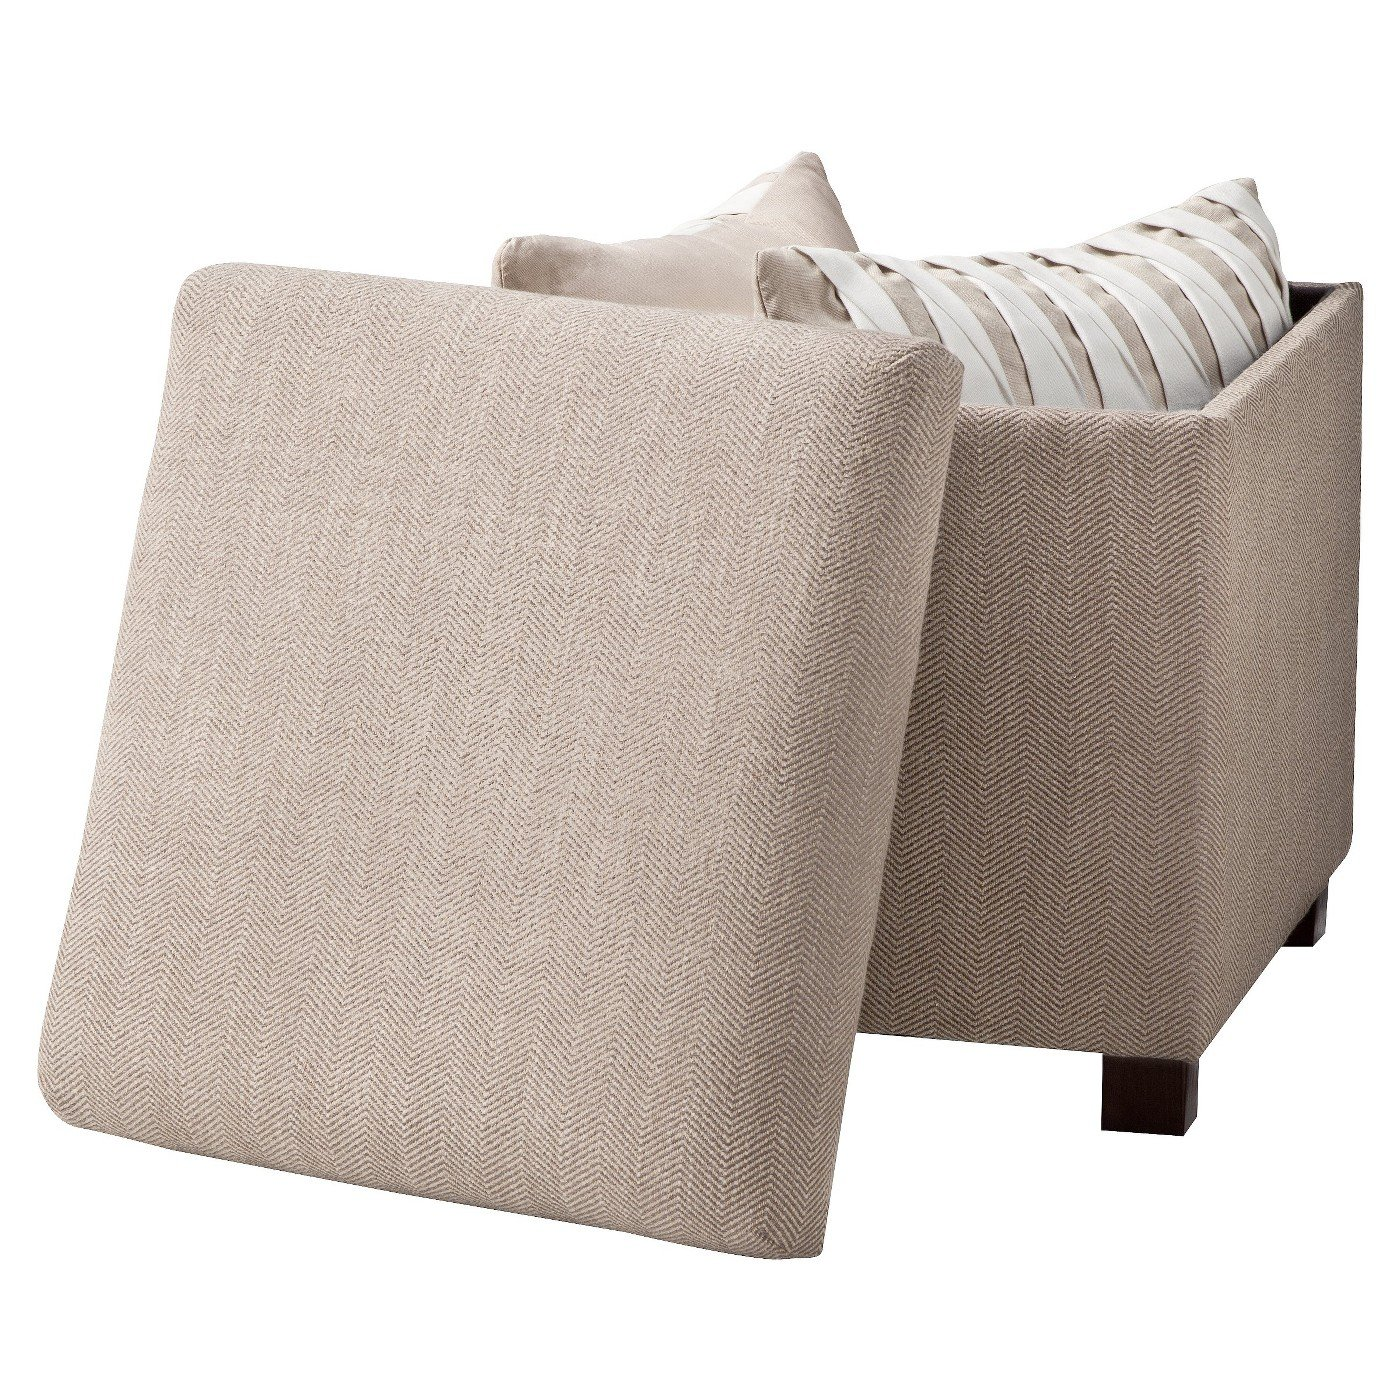 Great Deal Furniture 239320 Christabel Beige Fabric Ottoman Footstool,